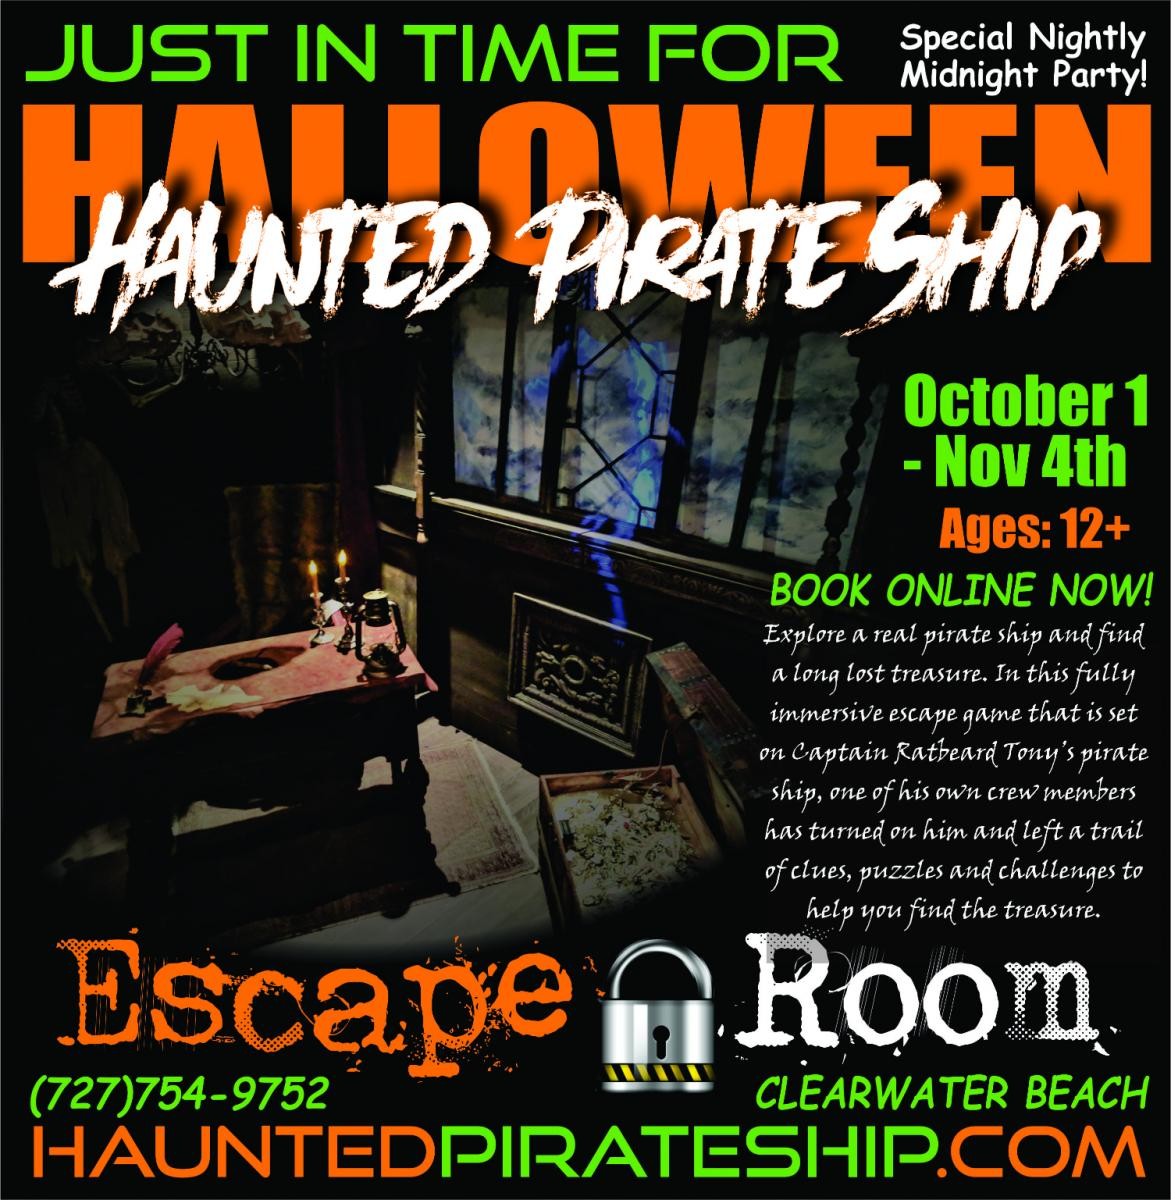 Escape Room Clearwater